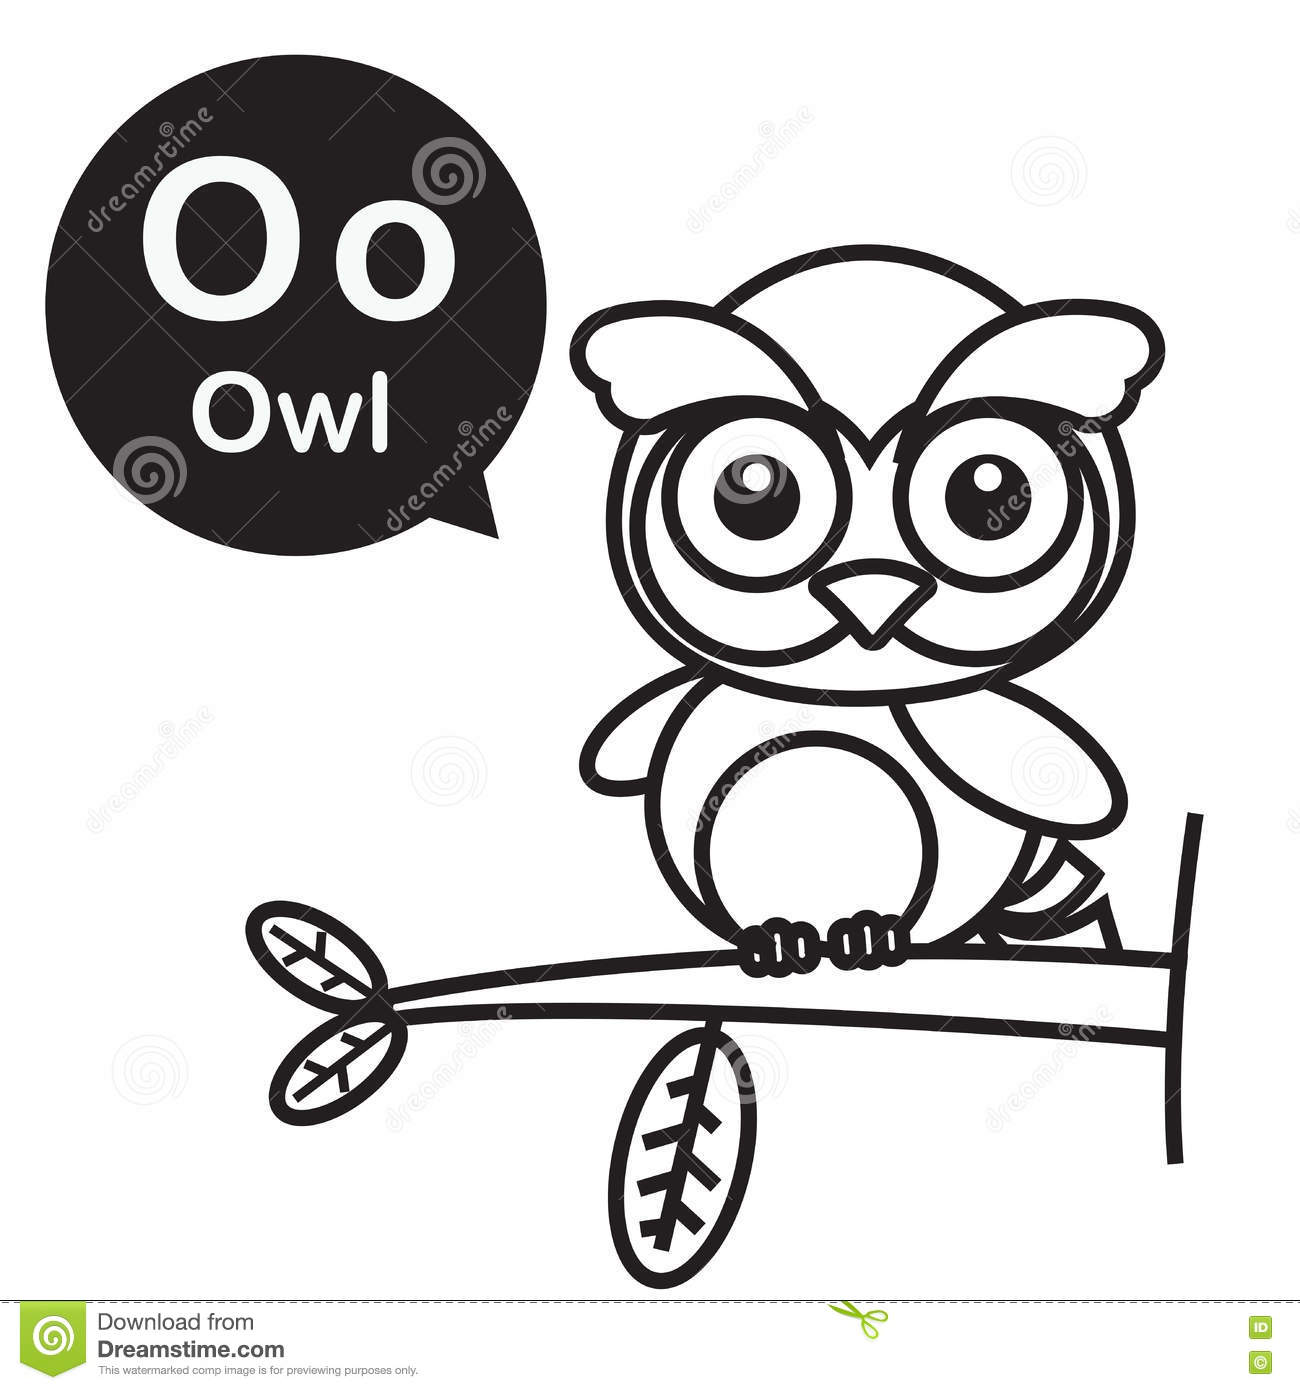 O Owl Cartoon And Alphabet For Children To Learning And Coloring Stock Vector